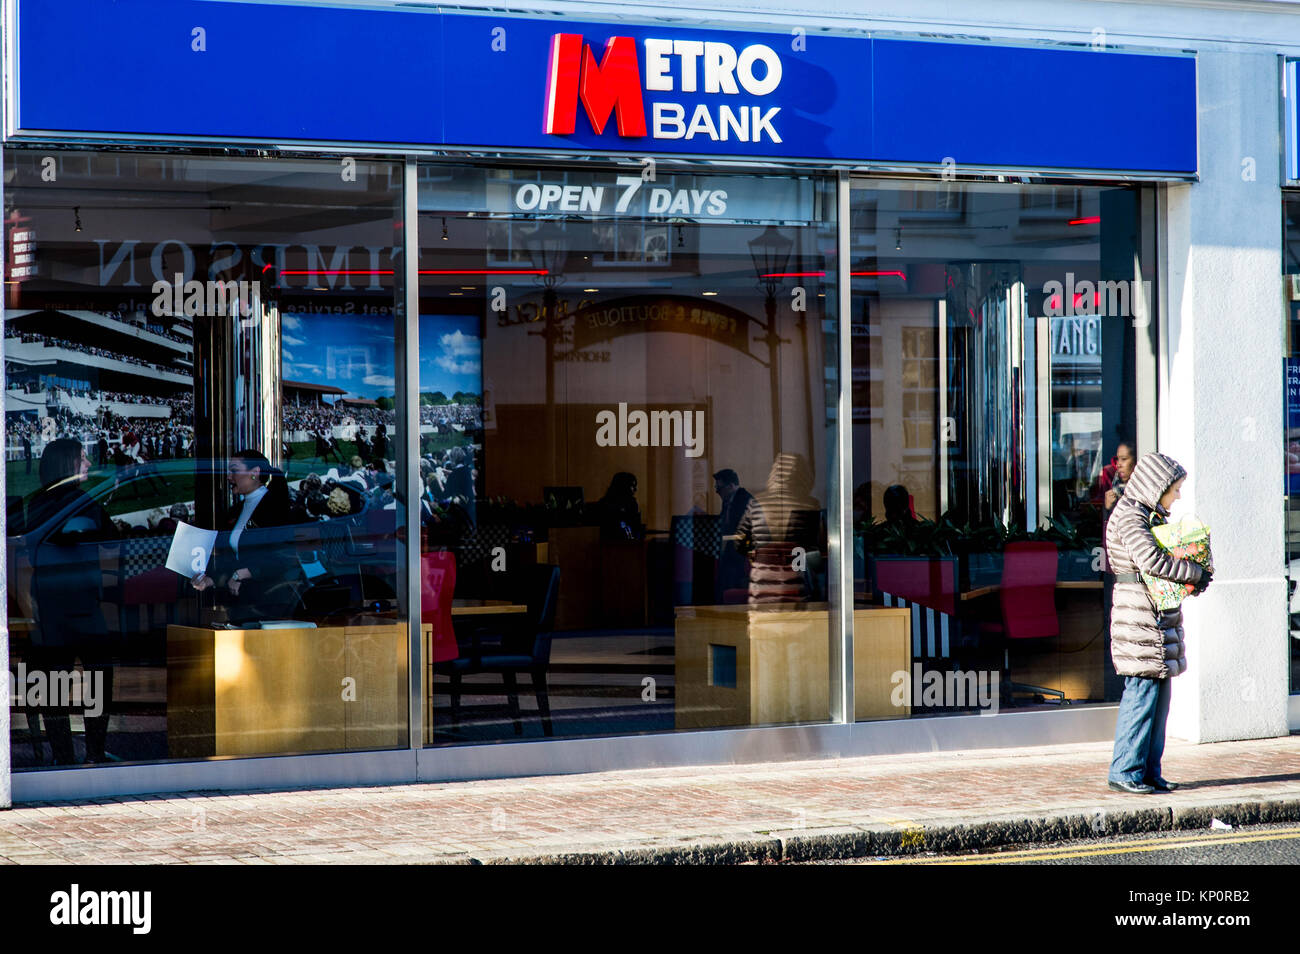 Metro Bank High Street Branch Financial Service Industry - Stock Image